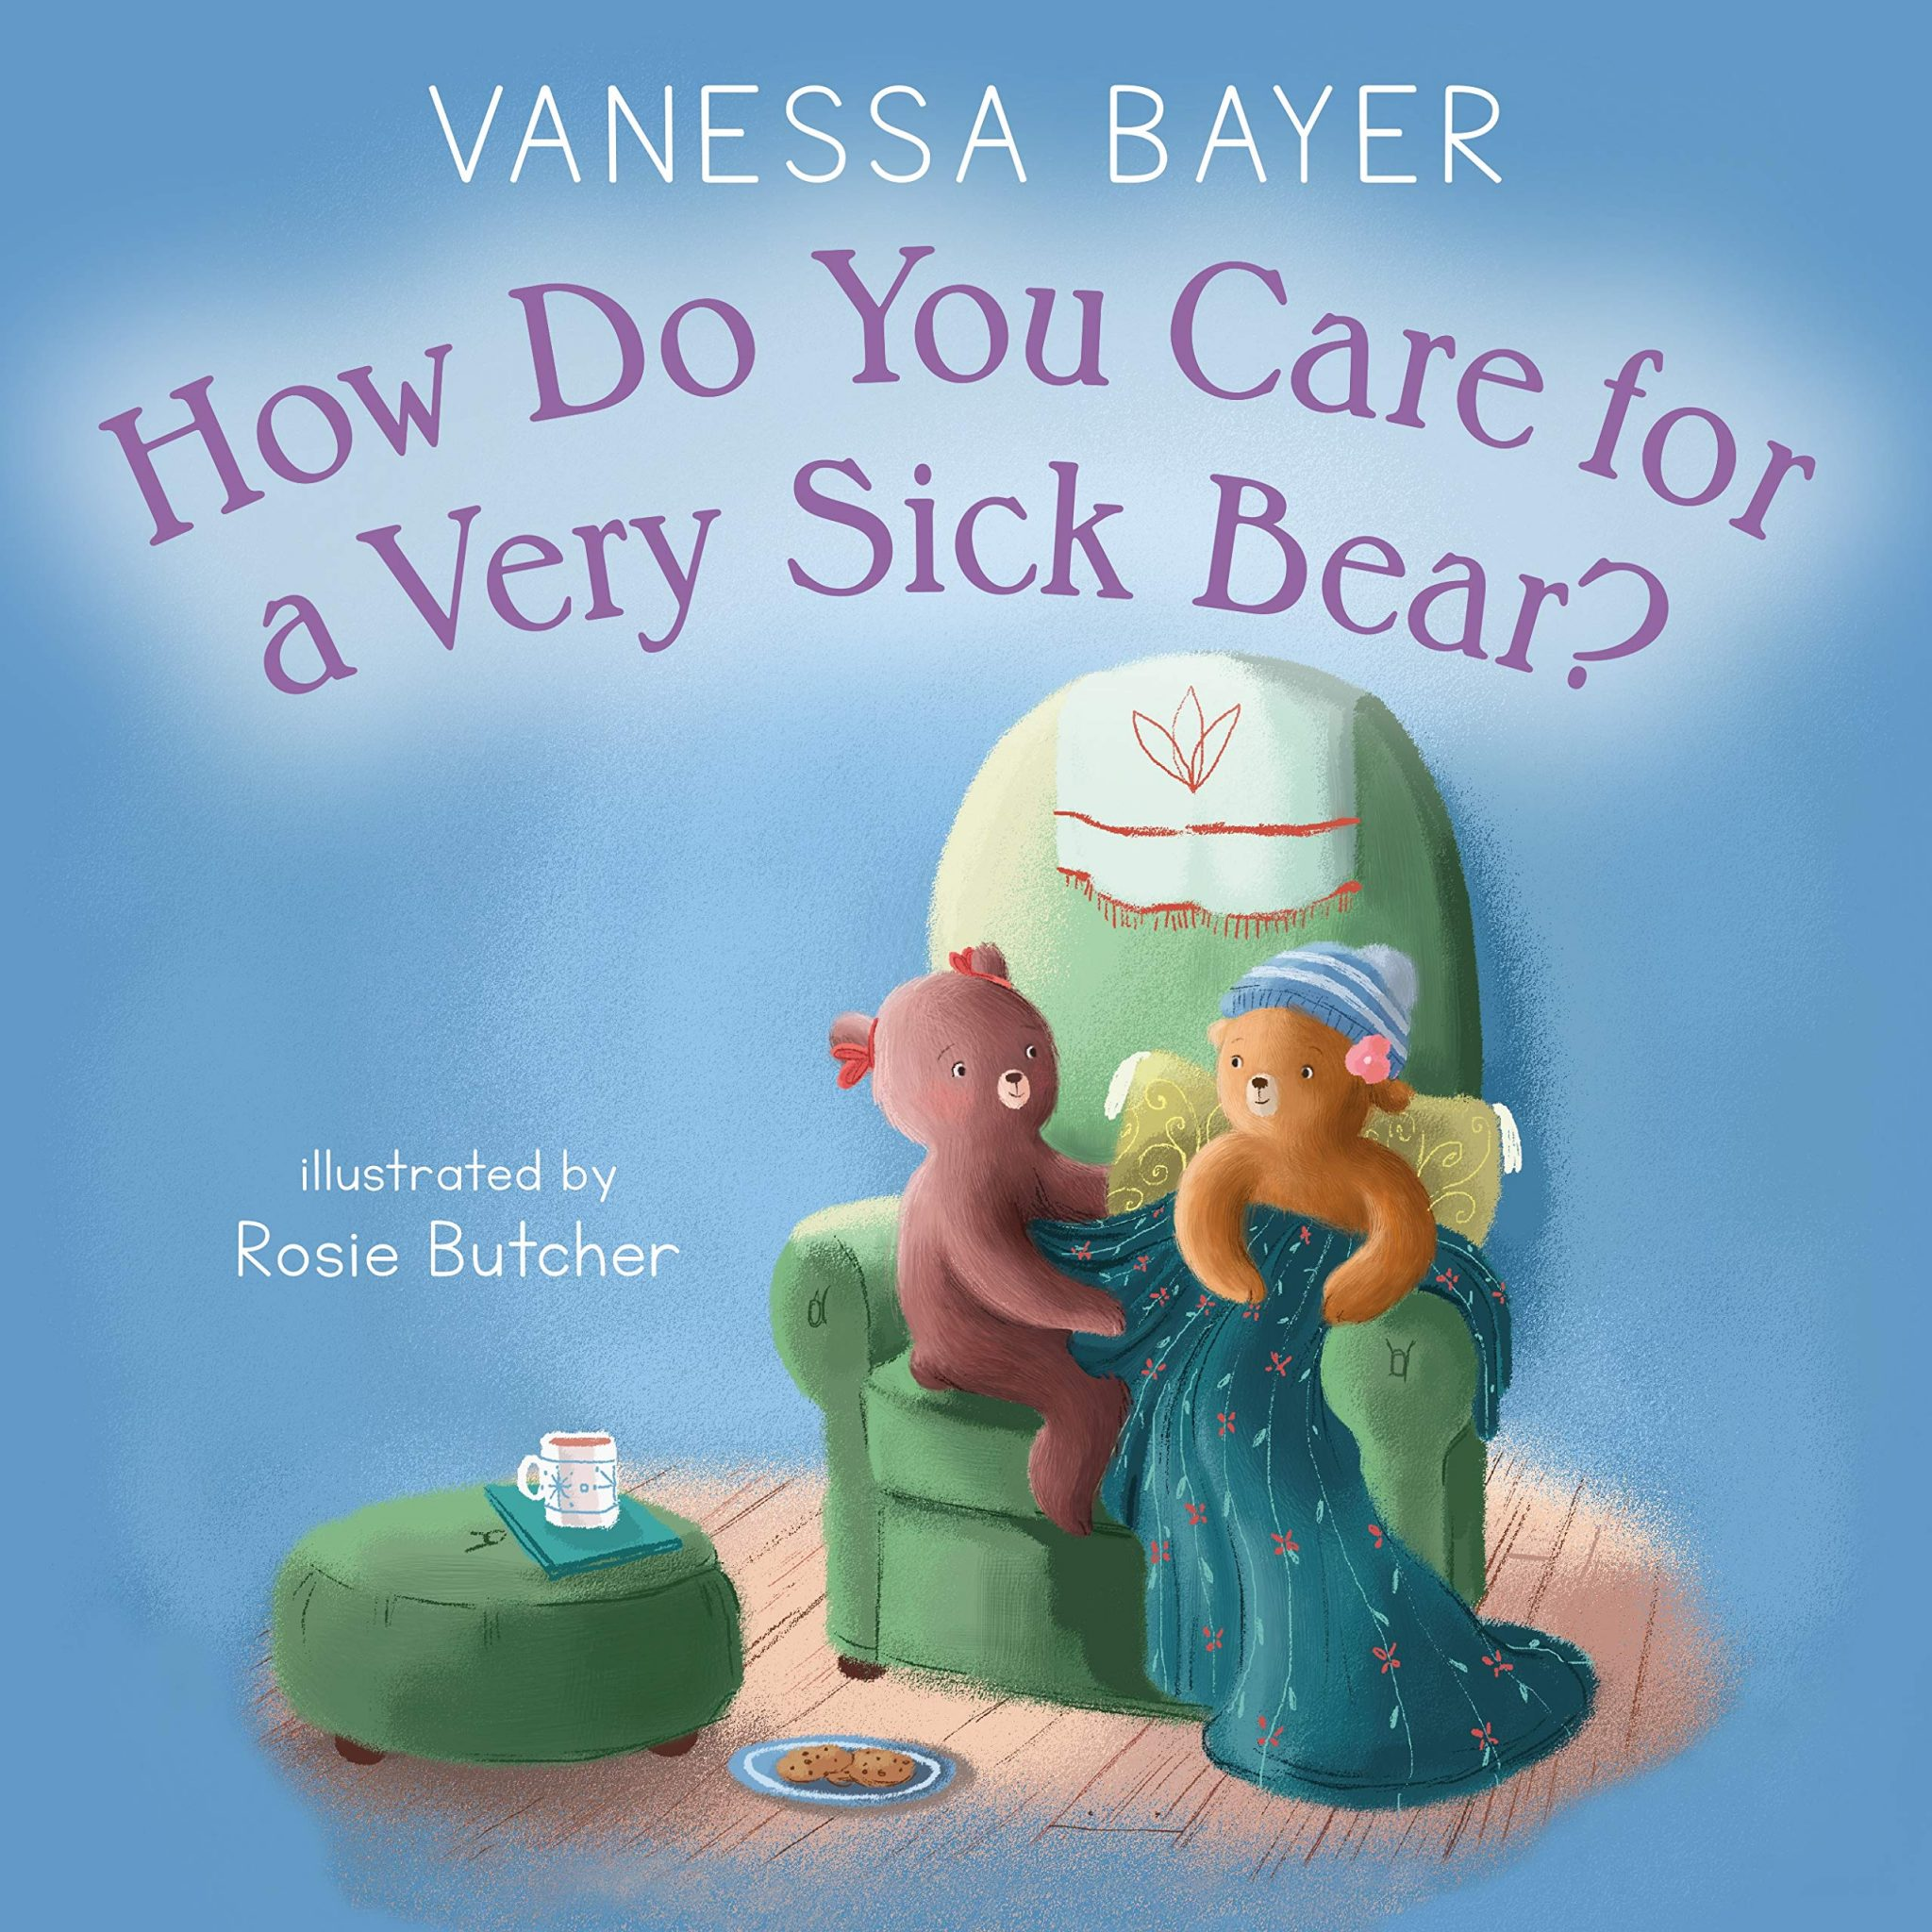 How Do You Care for a Very Sick Bear book